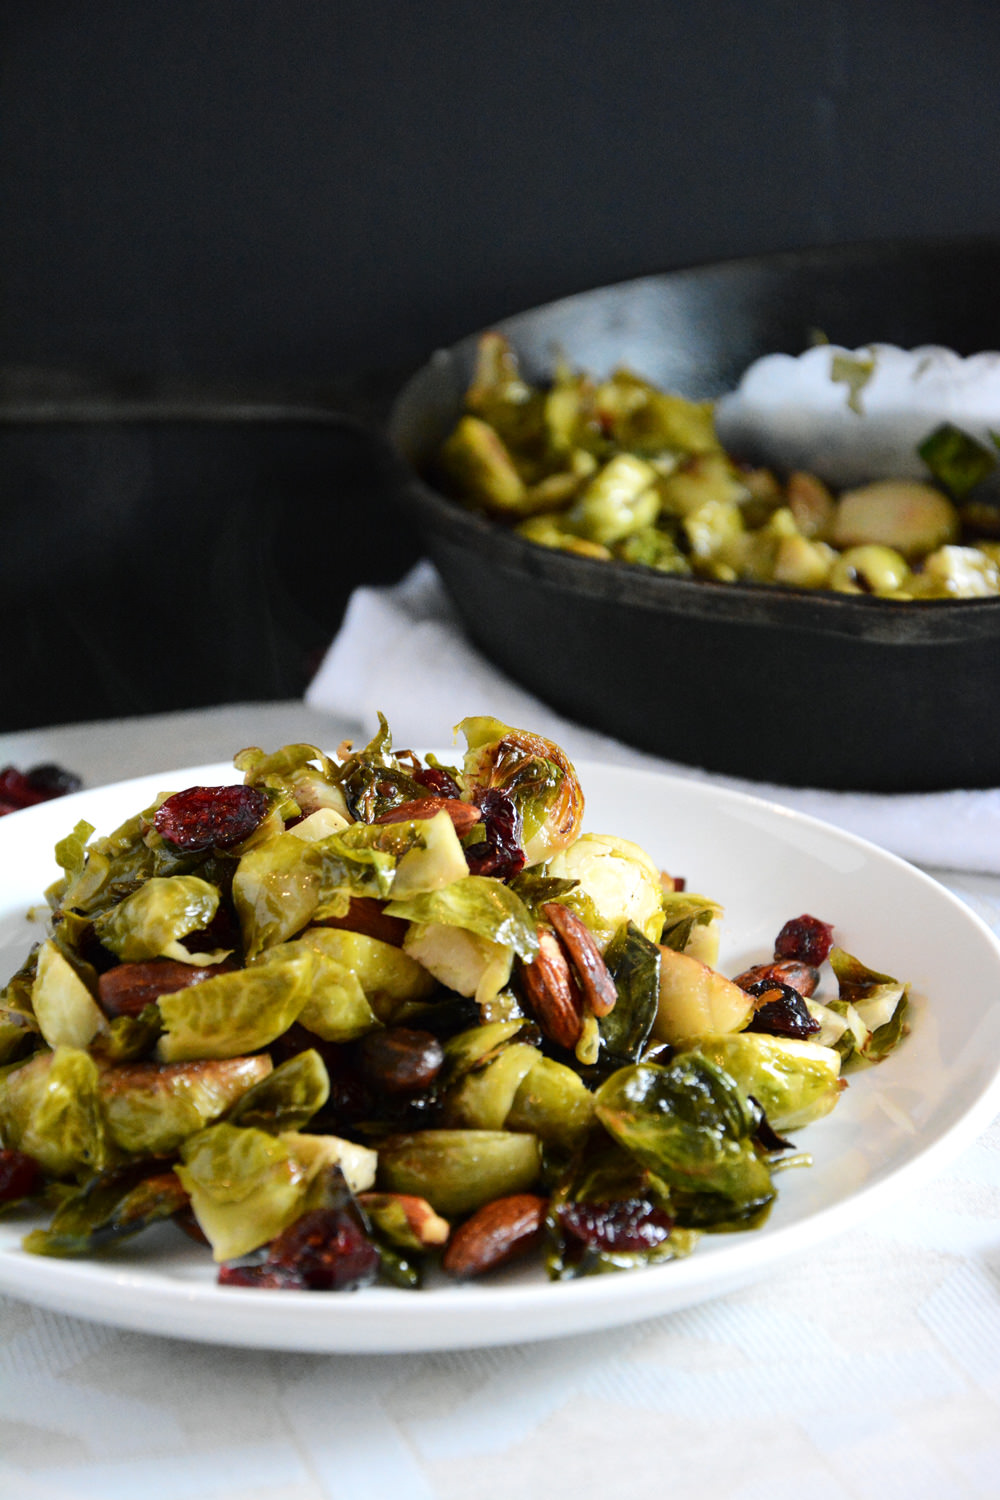 Cranberry & Almond Roasted Brussels Sprouts Antipasto Salad